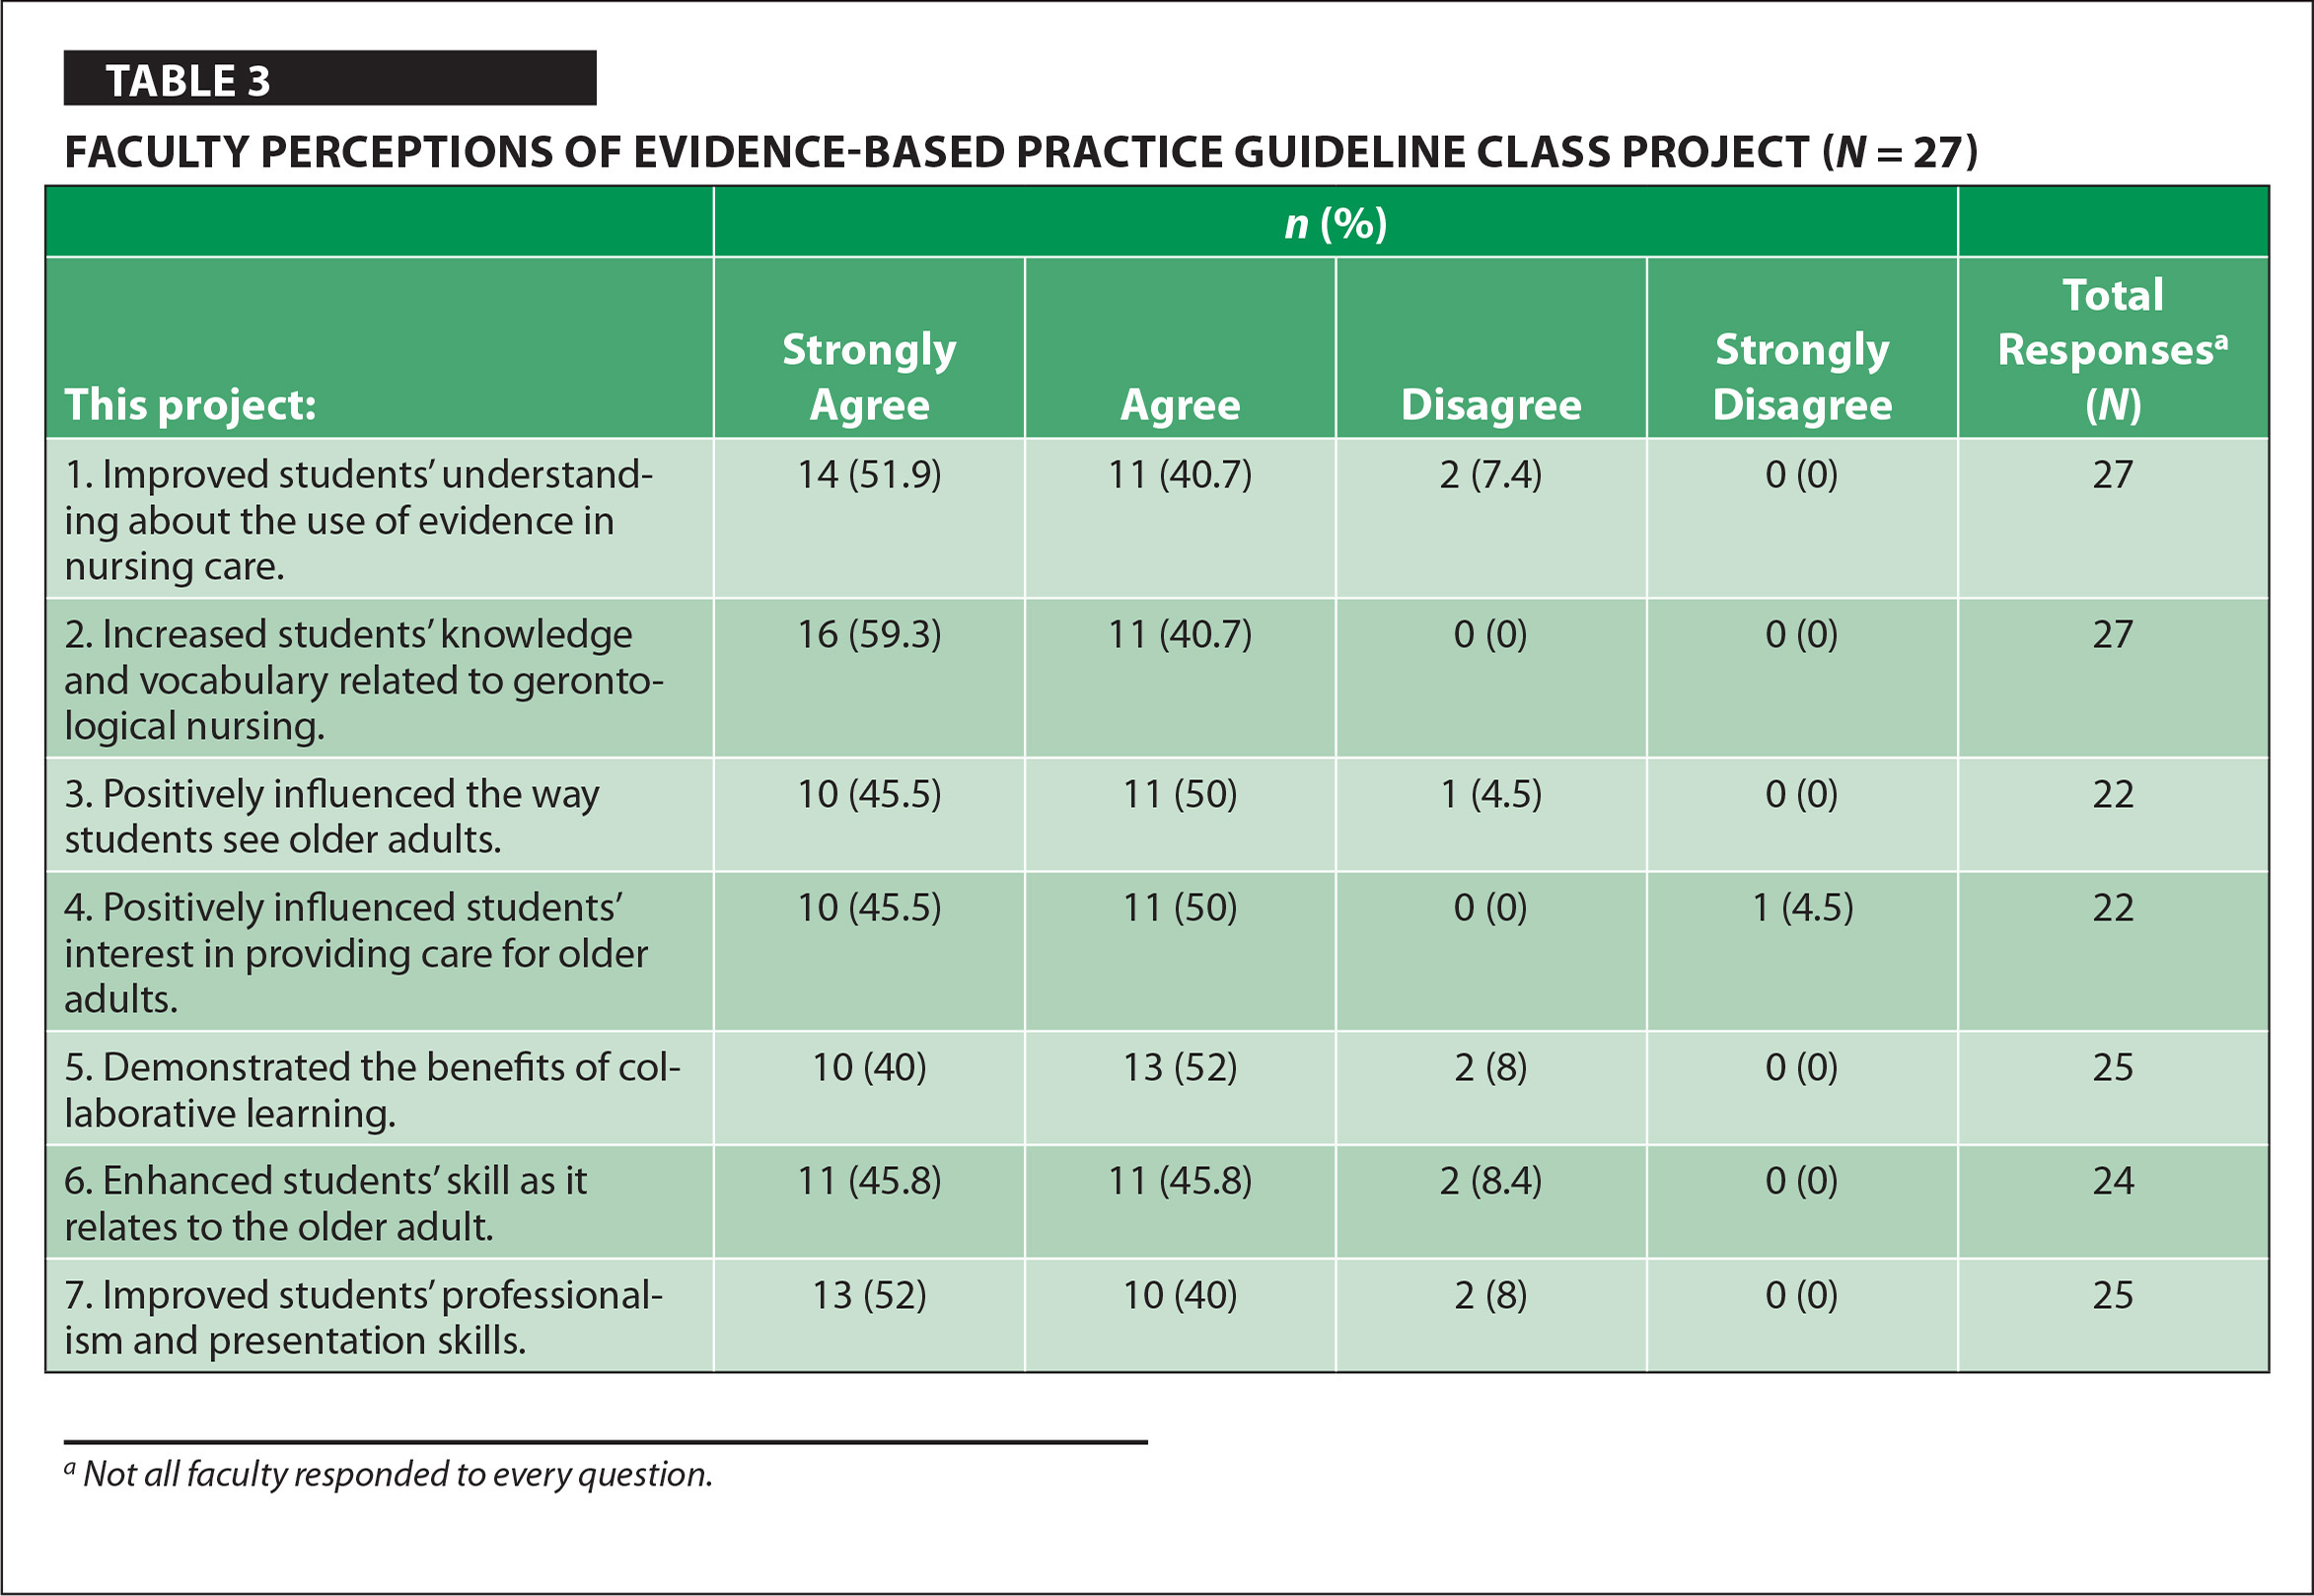 Faculty Perceptions of Evidence-Based Practice Guideline Class Project (N = 27)